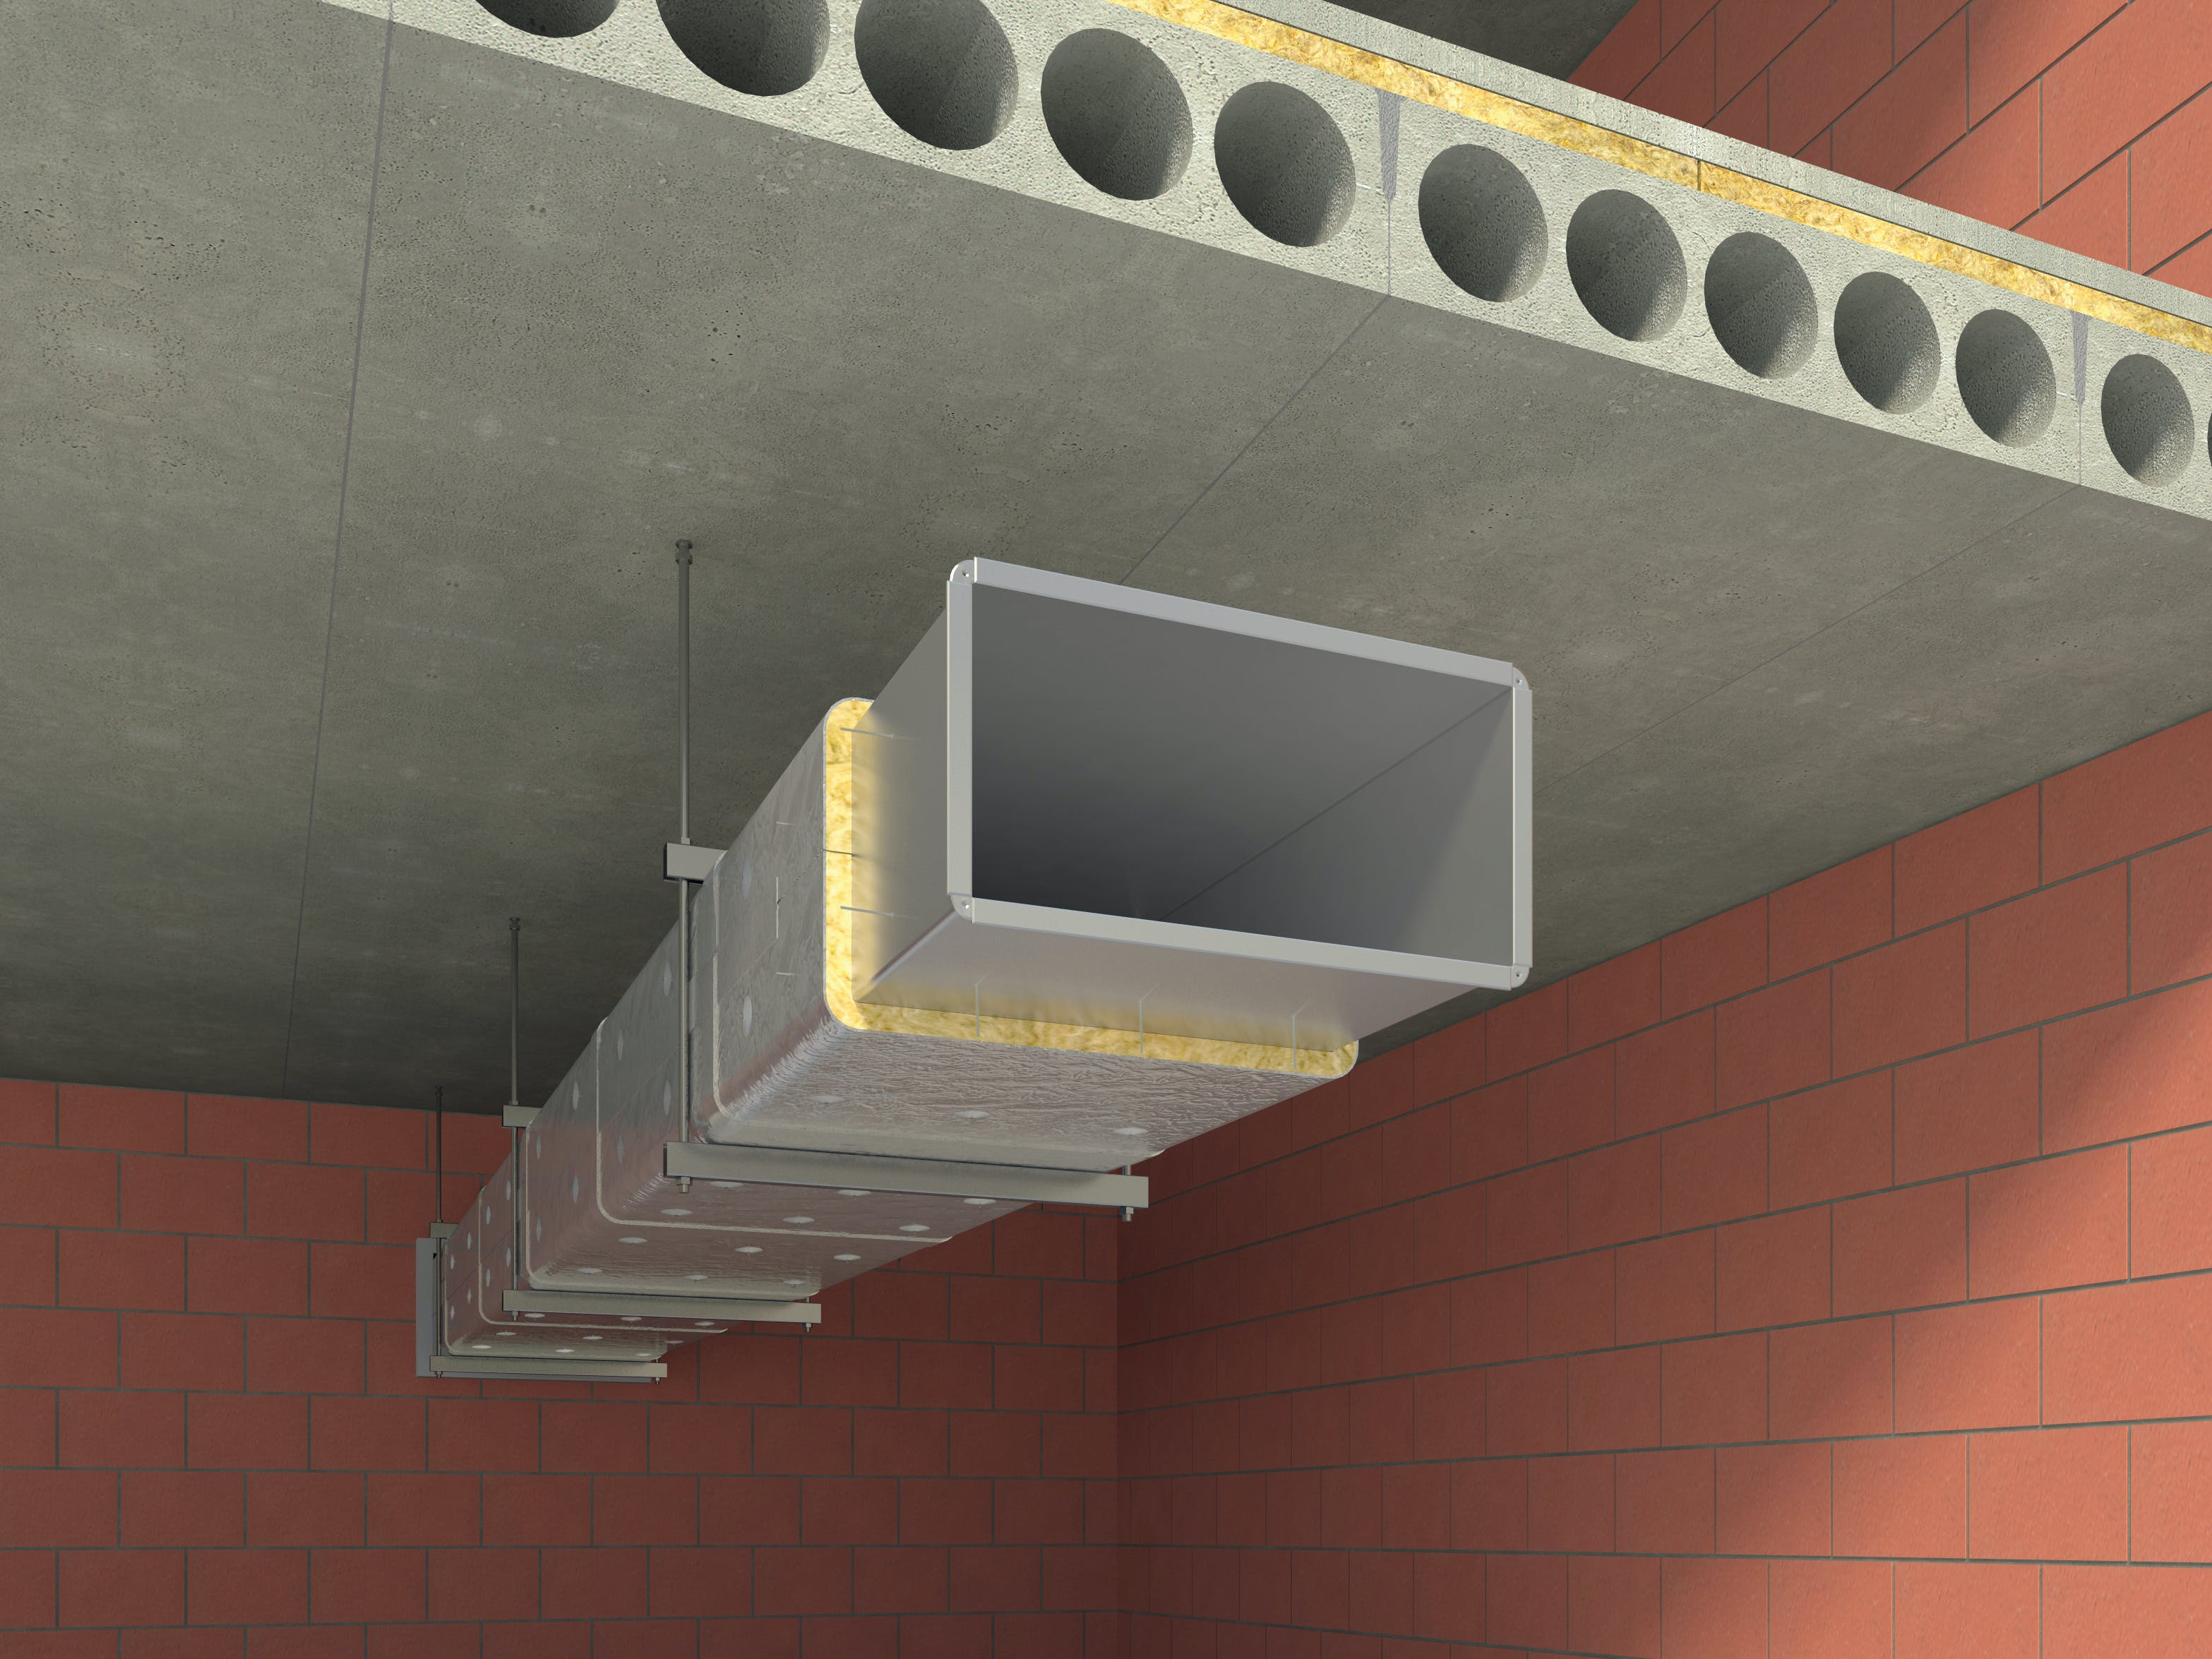 insulation of steel ventialion duct